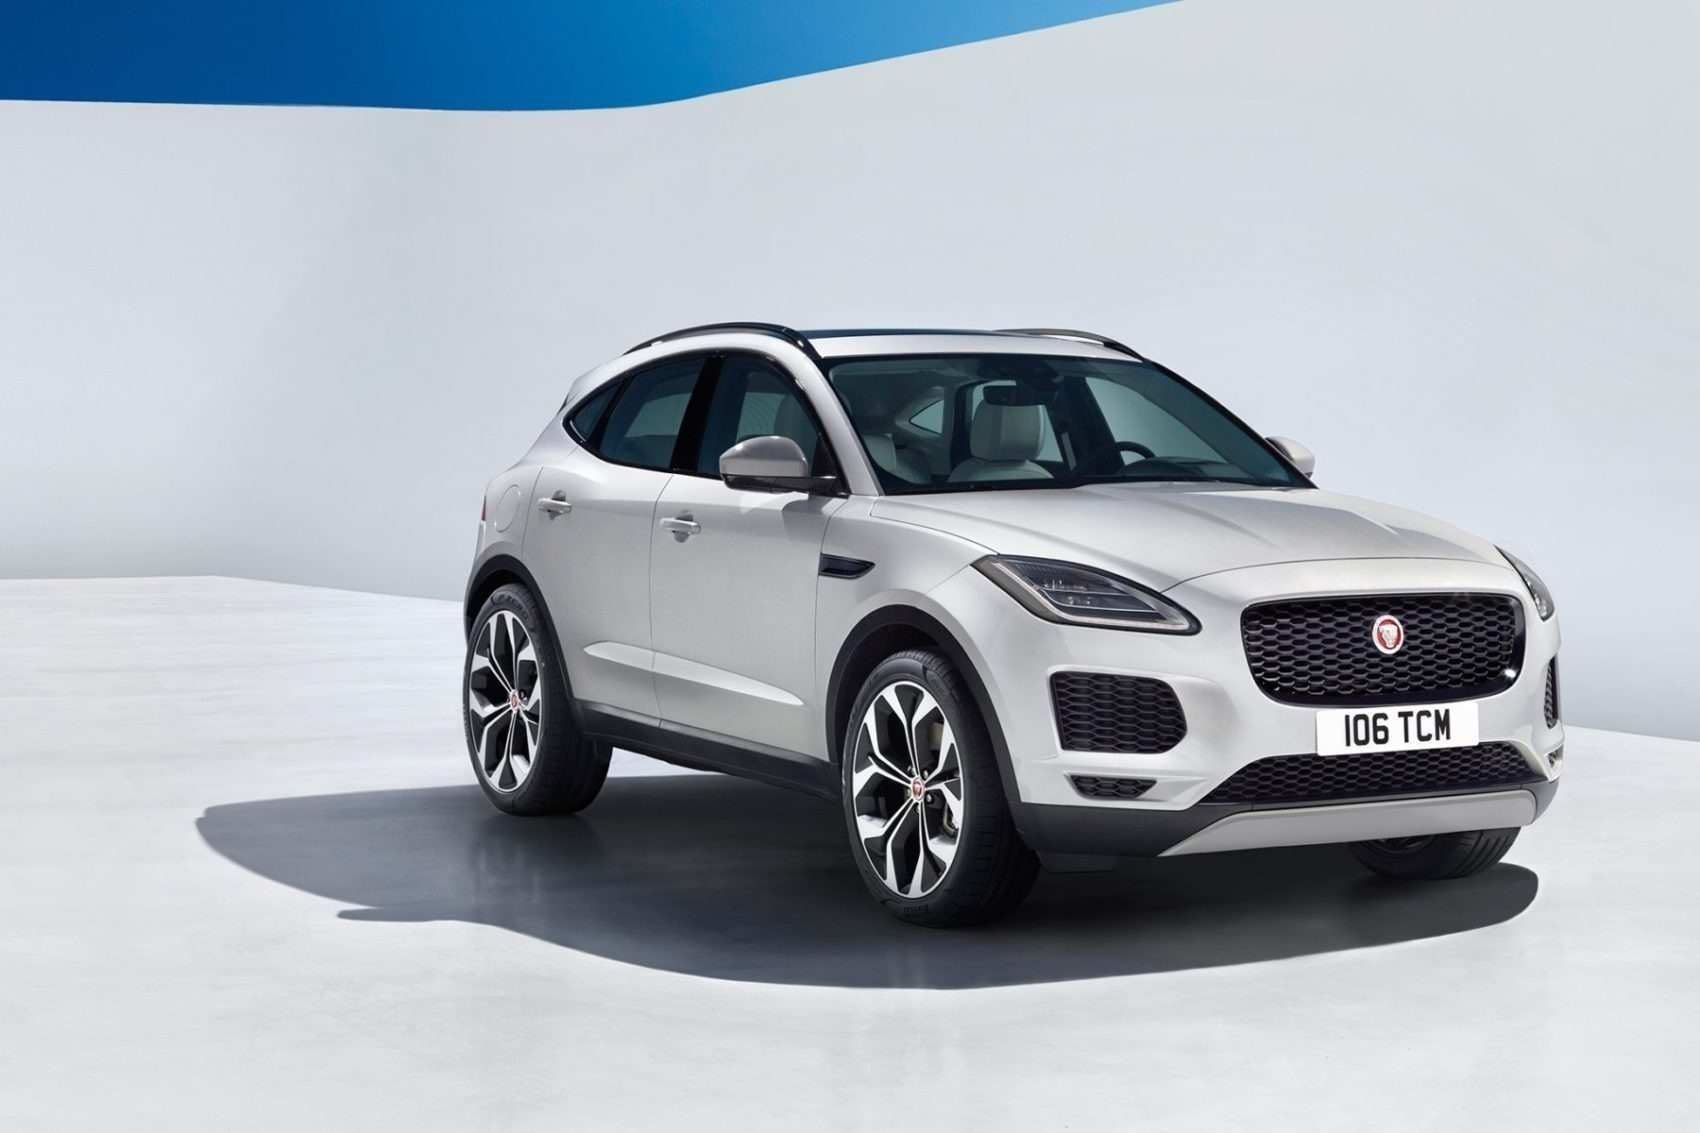 54 The Best 2019 Jaguar Xq Crossover New Concept